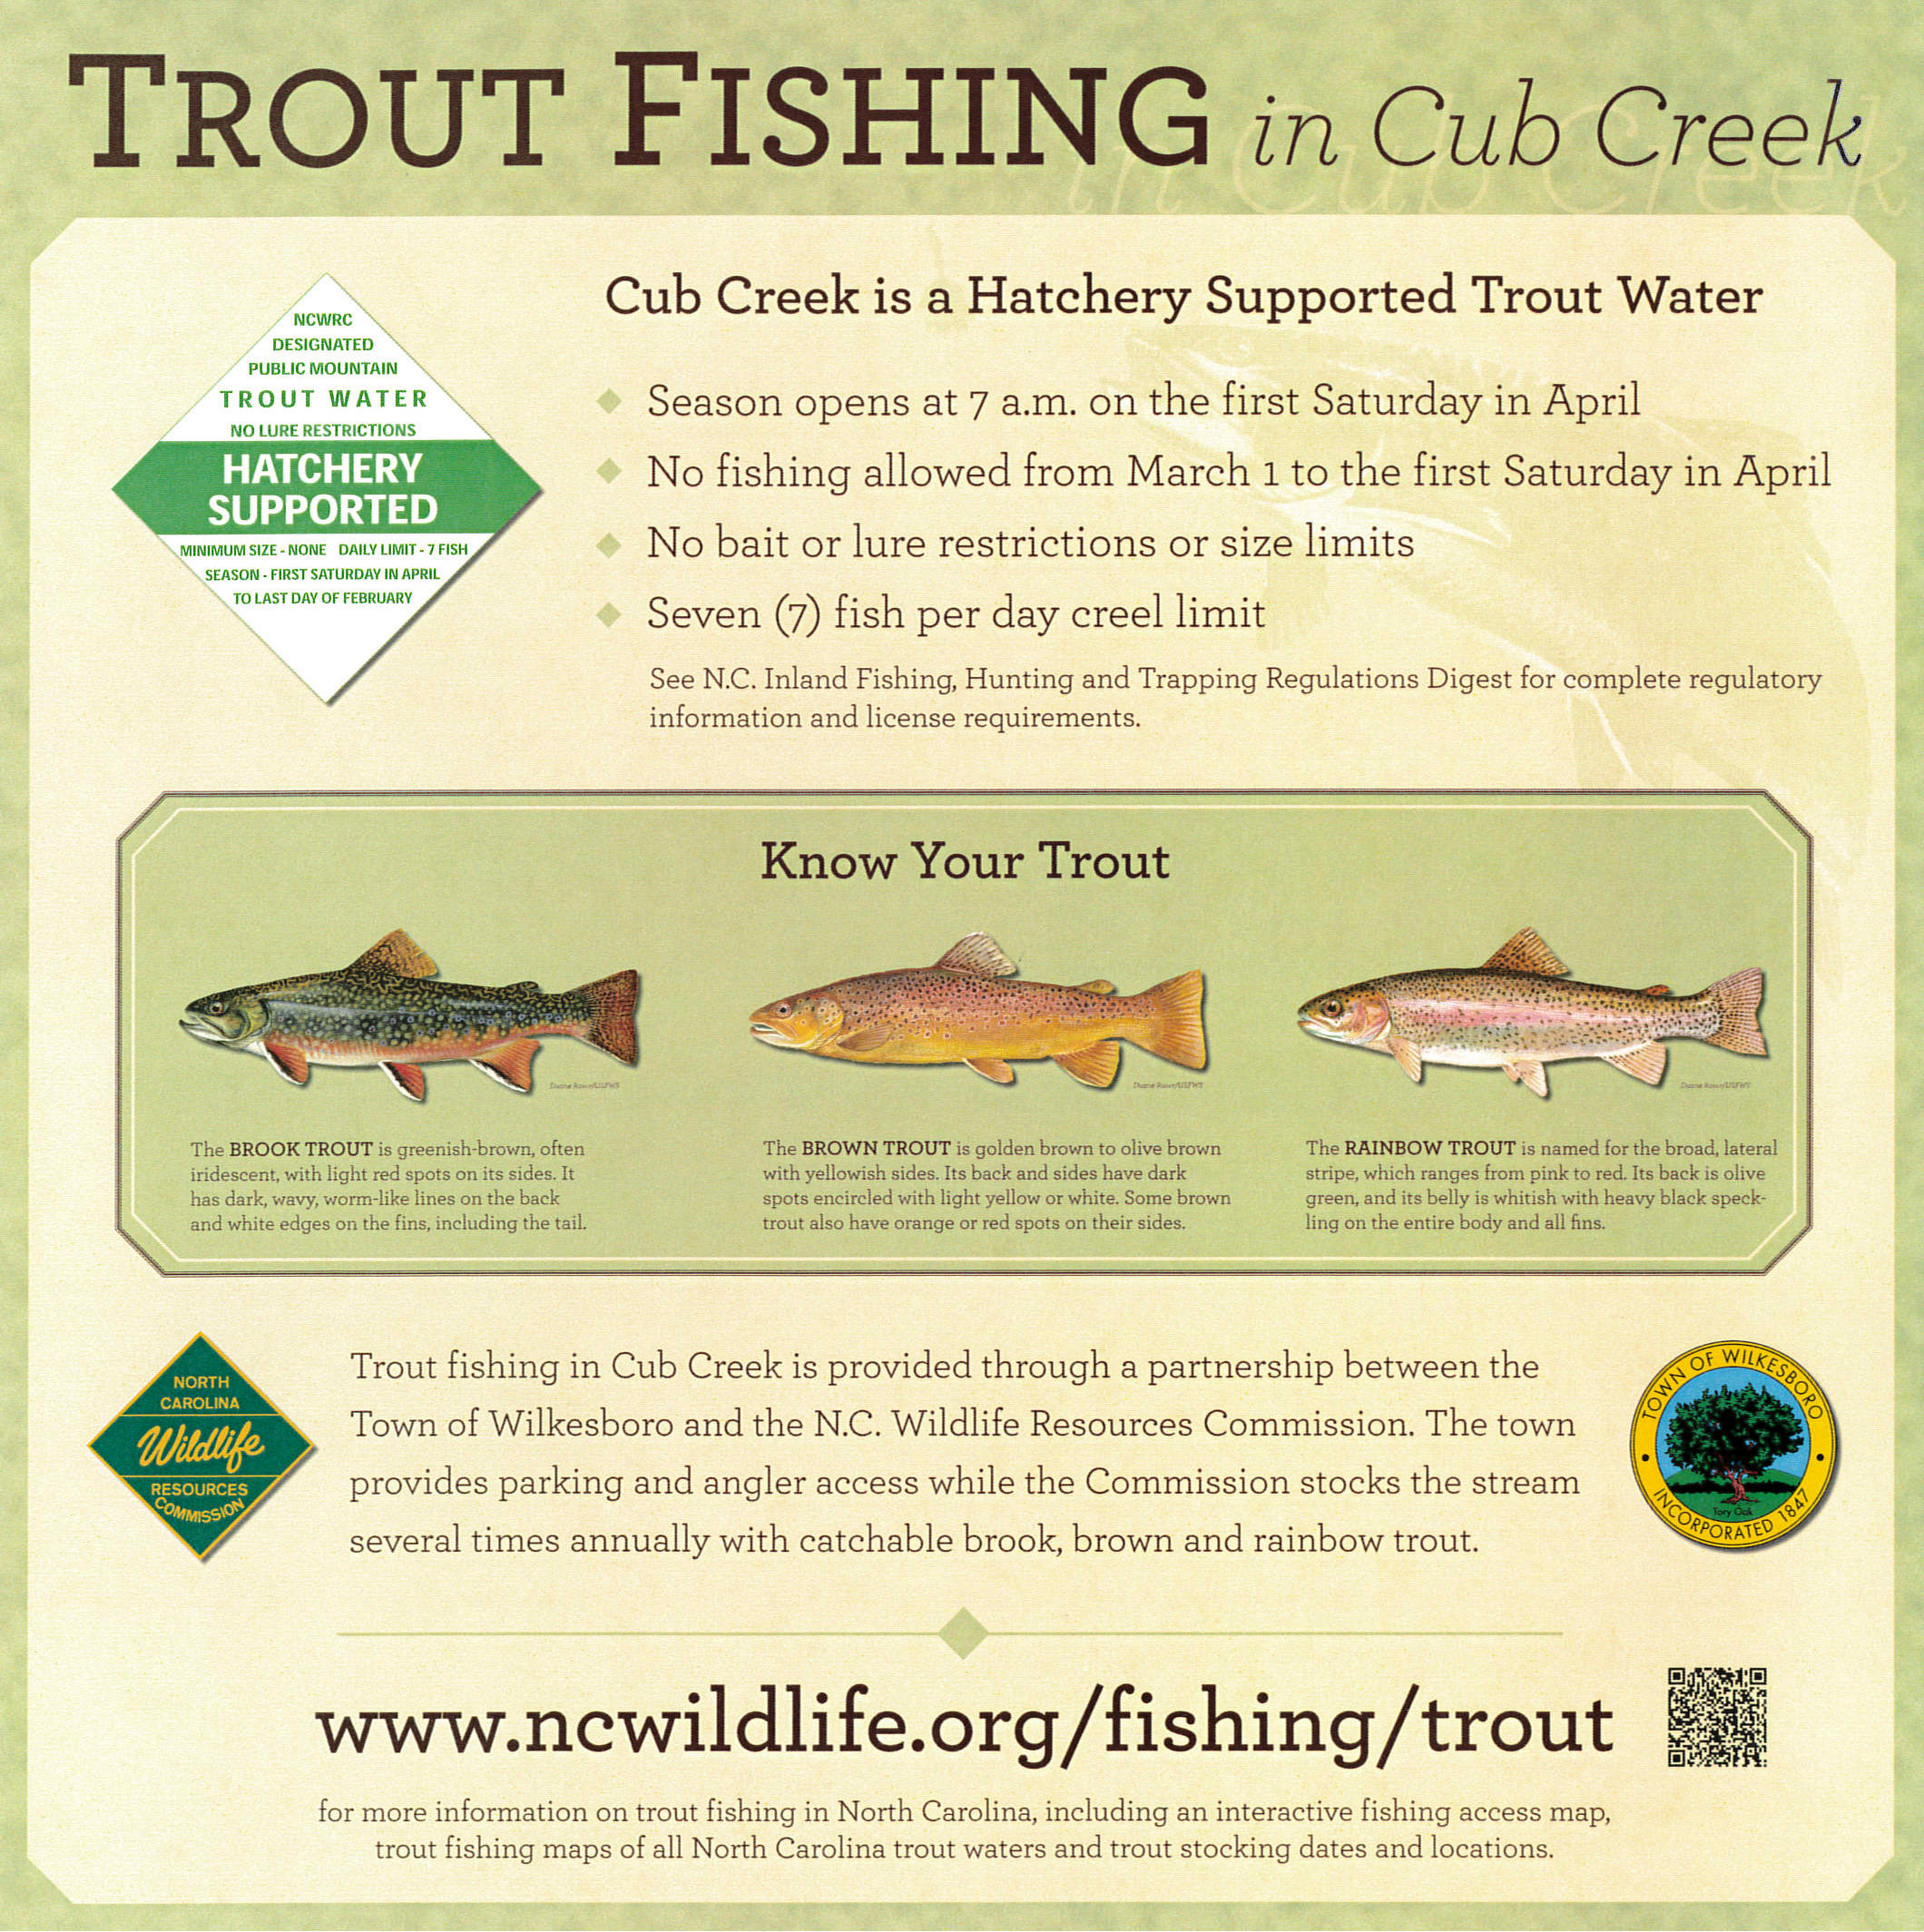 How Much Is A Fishing License In Nc: Visit Wilkesboro NC